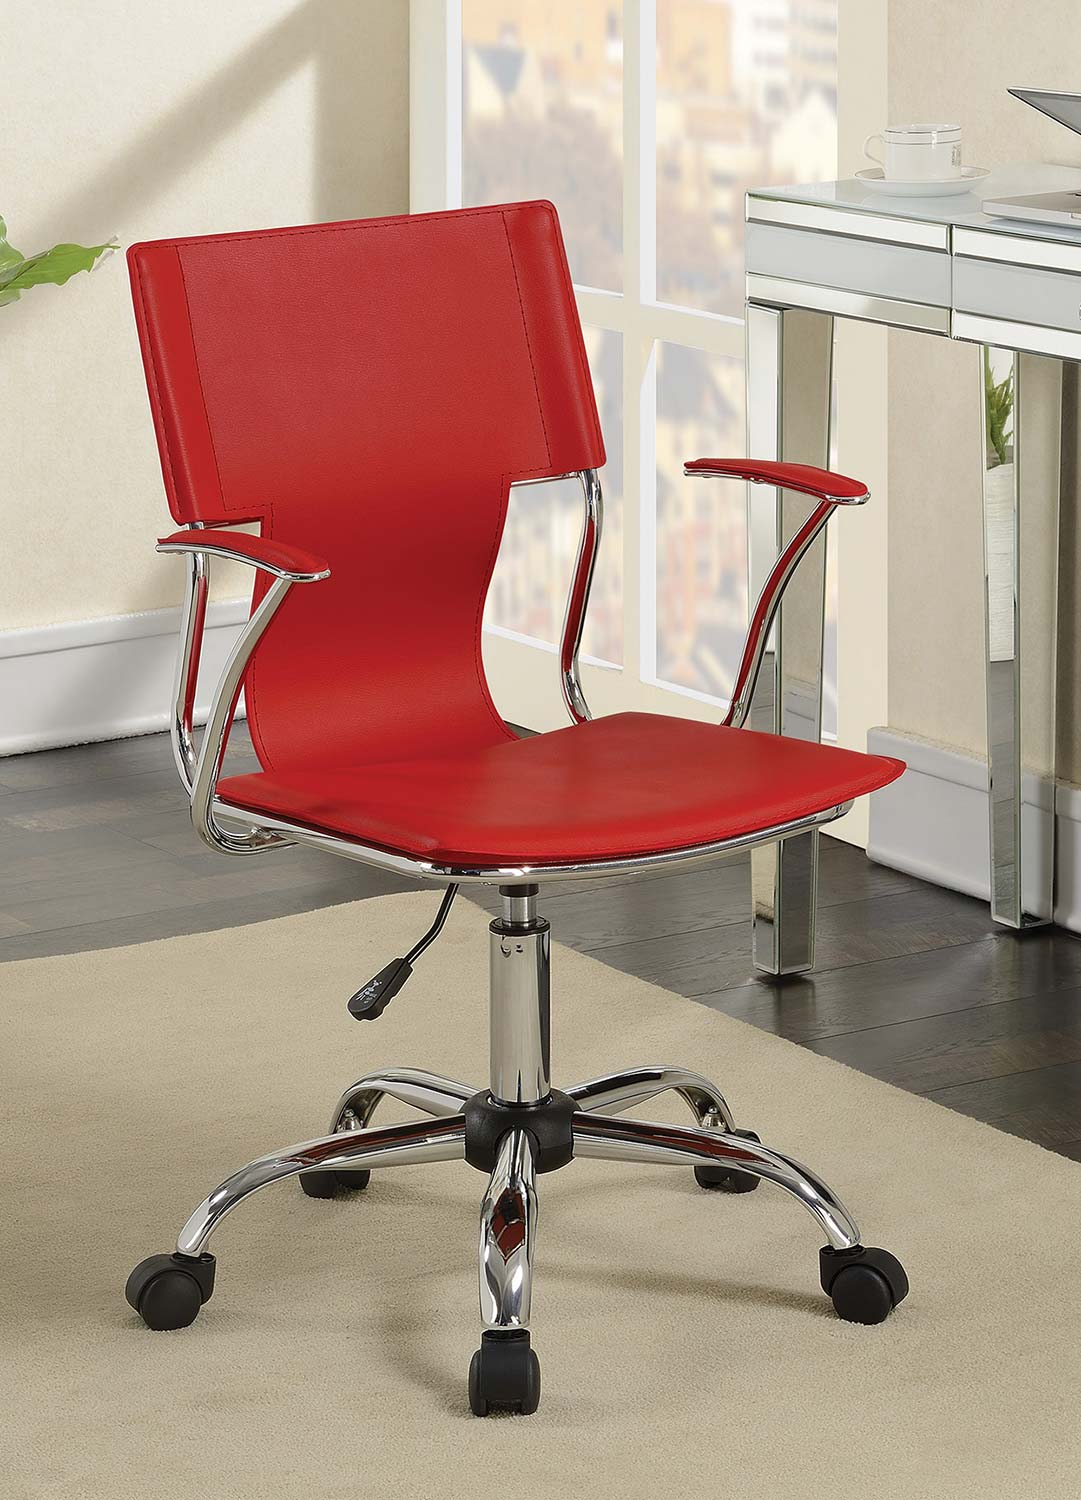 Coaster 801364 Office Chair - Red